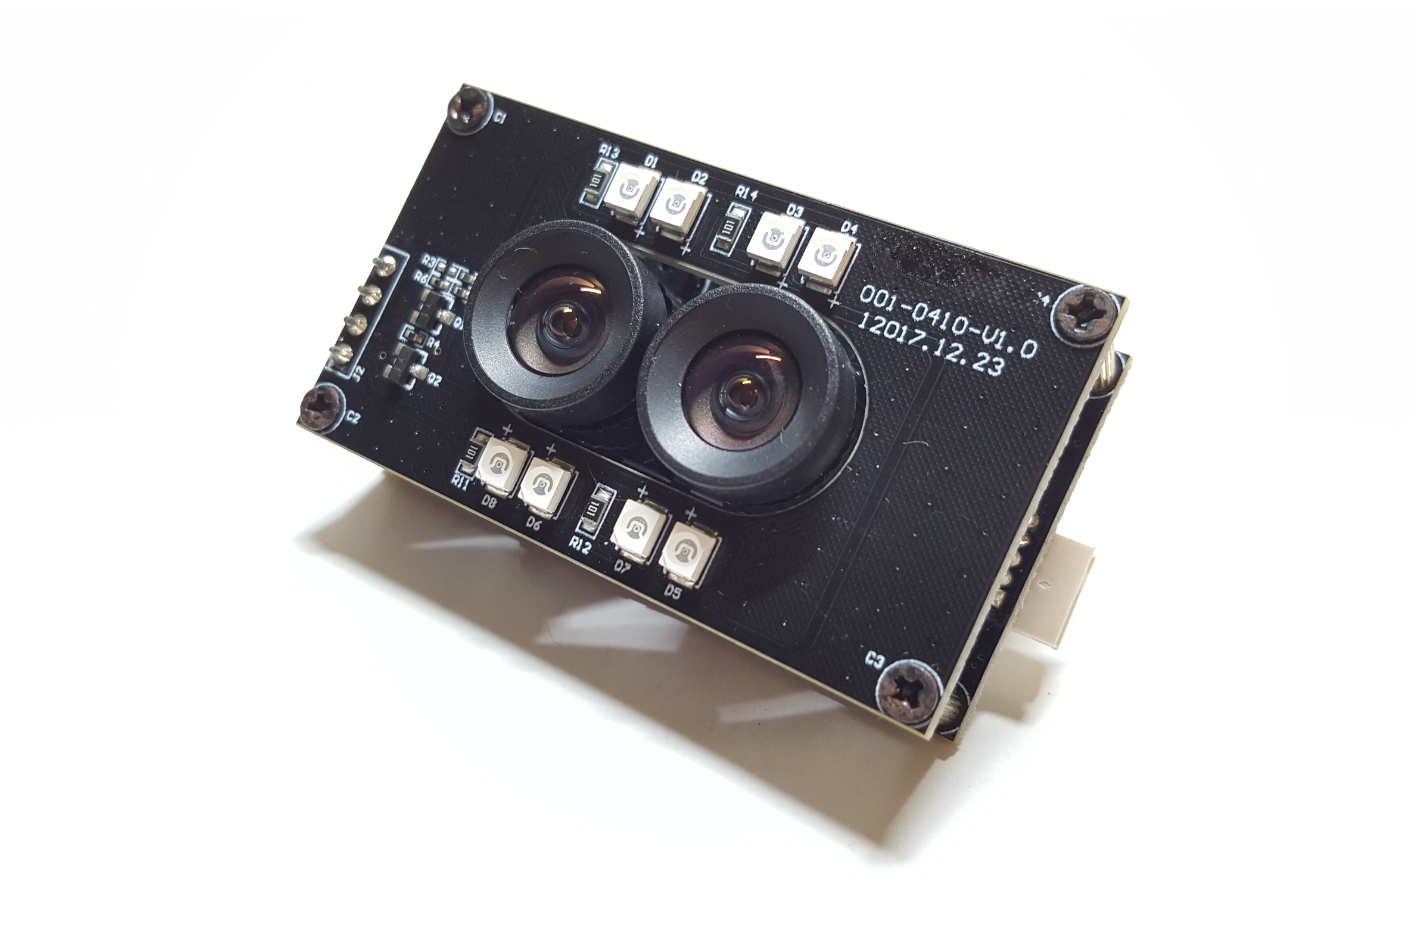 2MP, Stereo Vision, RGB & IR images, Dual-lens Camera Module with Omnivision OV2710 sensor